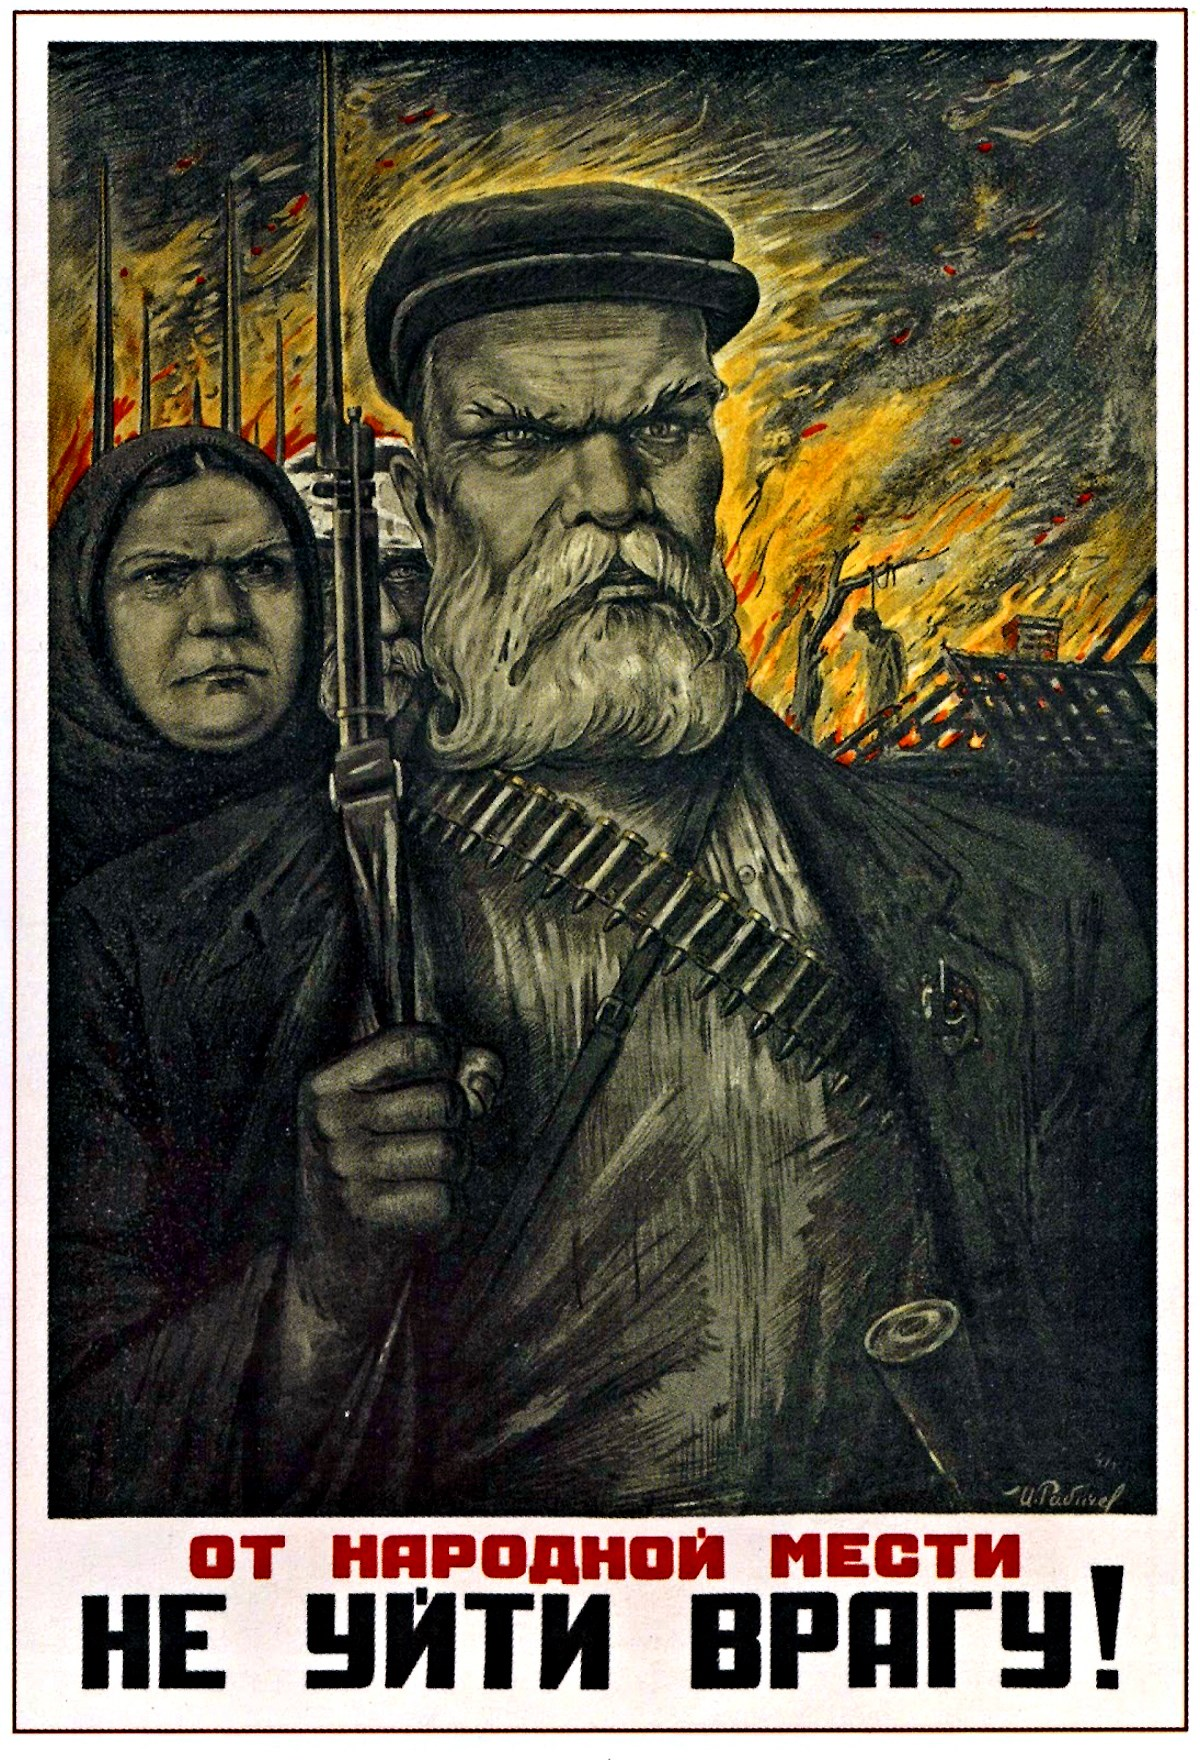 00 Isaak Rabichev. The Foe Won't Escape the People's Vengeance. 1941